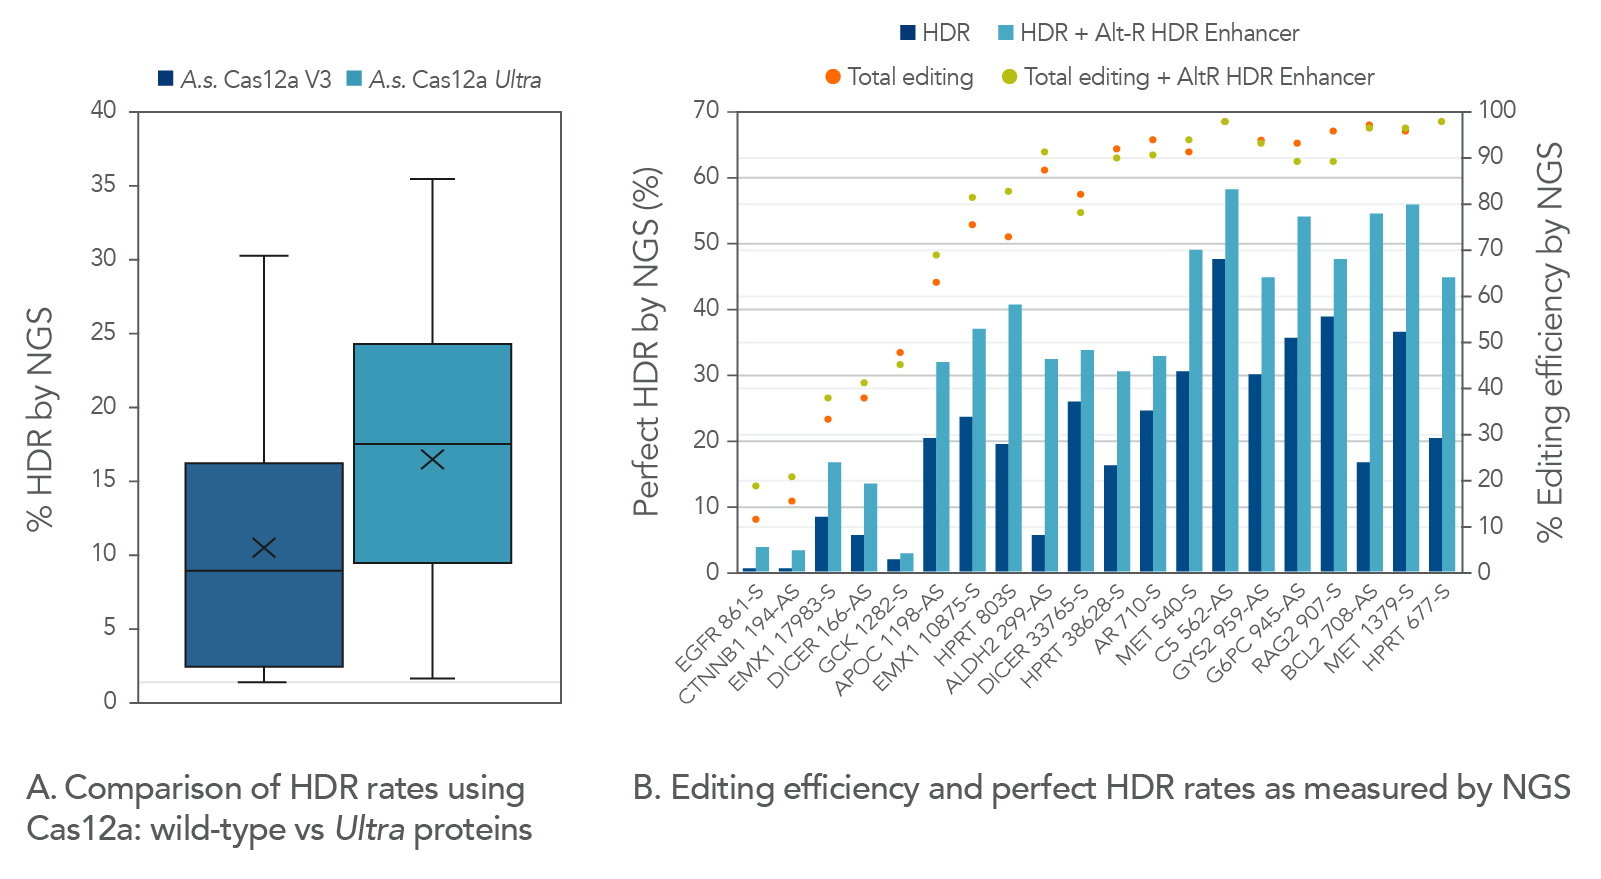 High HDR rates with Alt-R Cas12a Ultra protein and HDR Enhancer